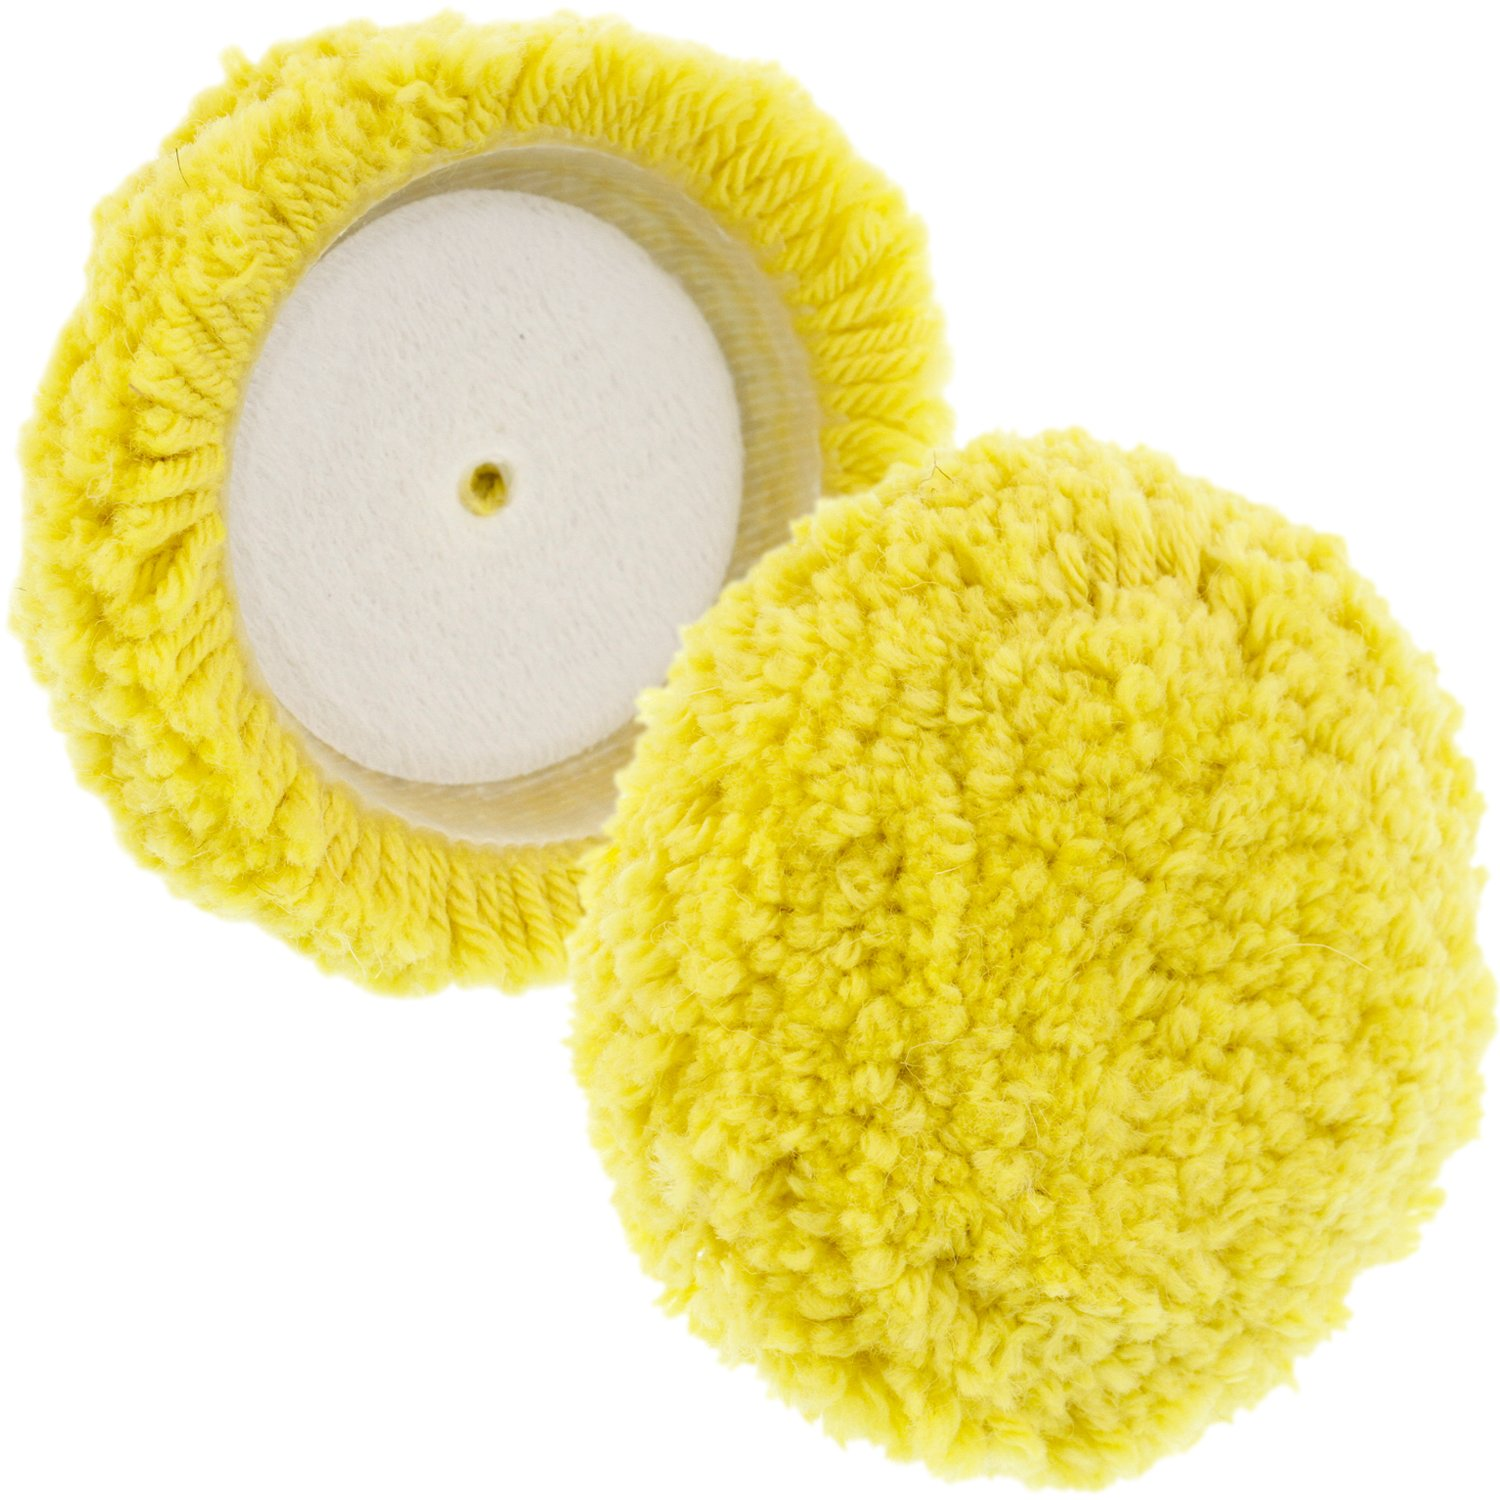 TCP Global Brand 3 Mini Buffing and Polishing Pad Kit with 4 Pads and 1//4 Drill Adapter Backing Plate